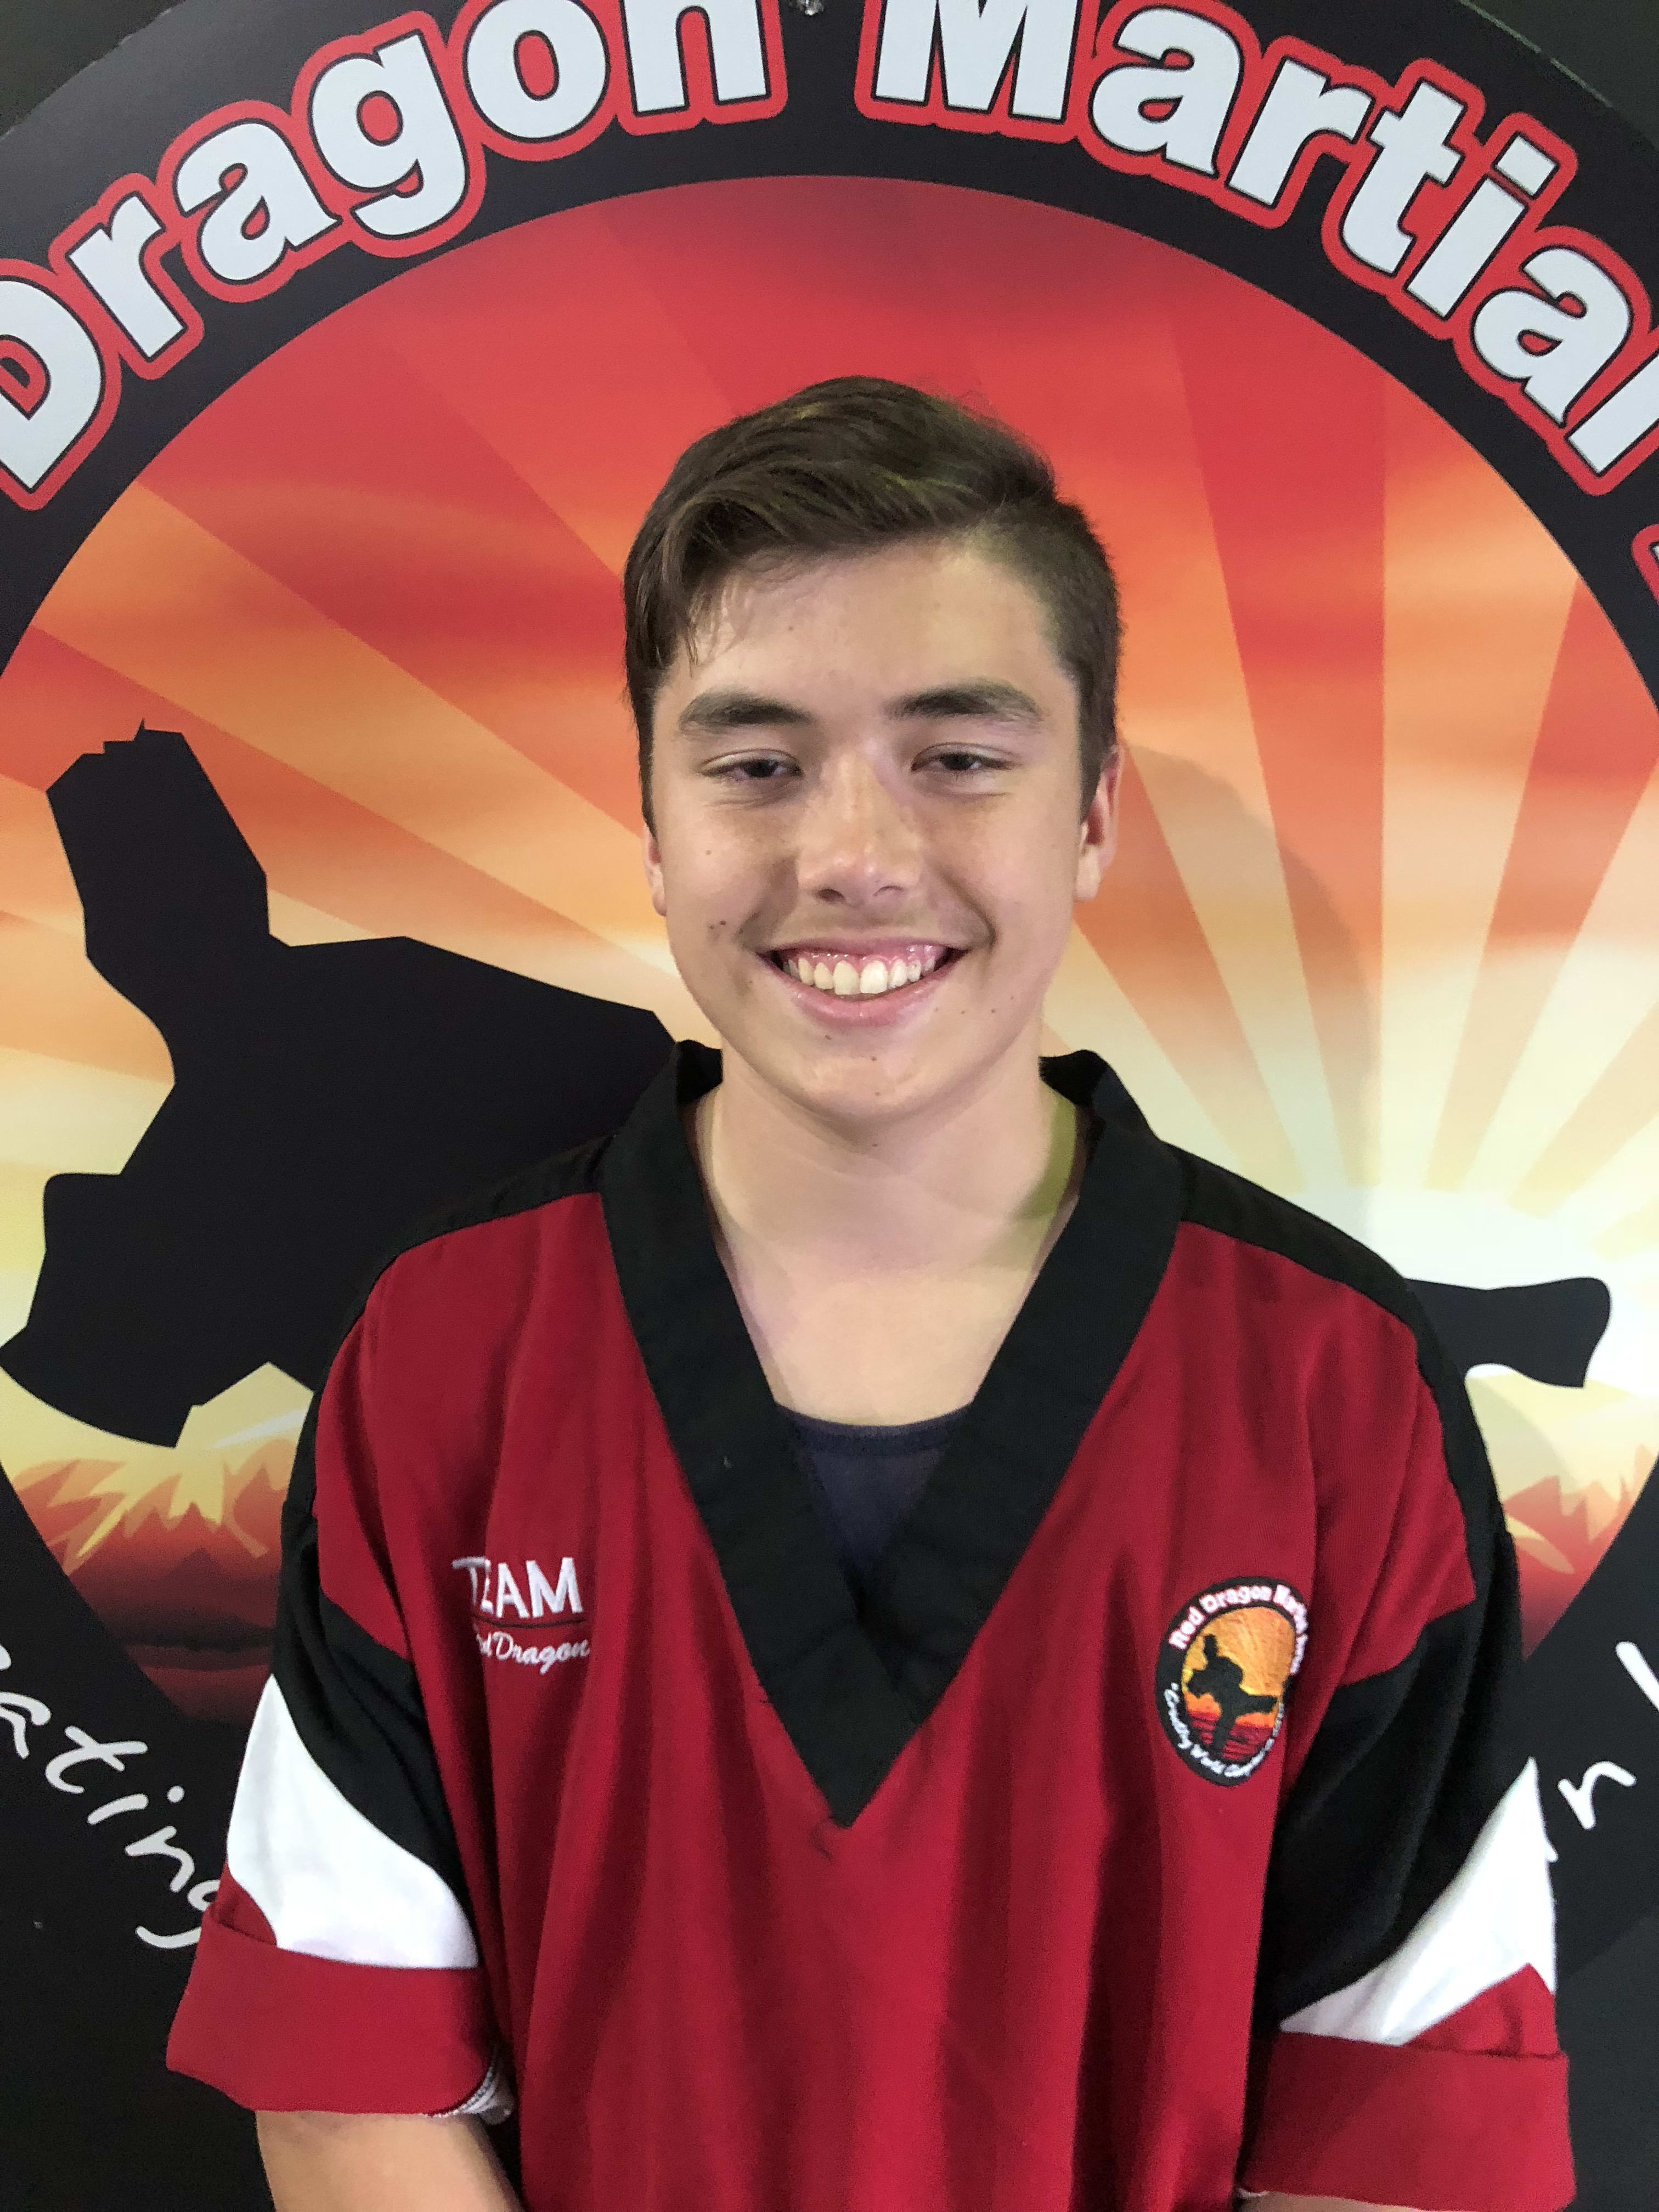 Tre' Wooldridge in Caboolture - Red Dragon Martial Arts